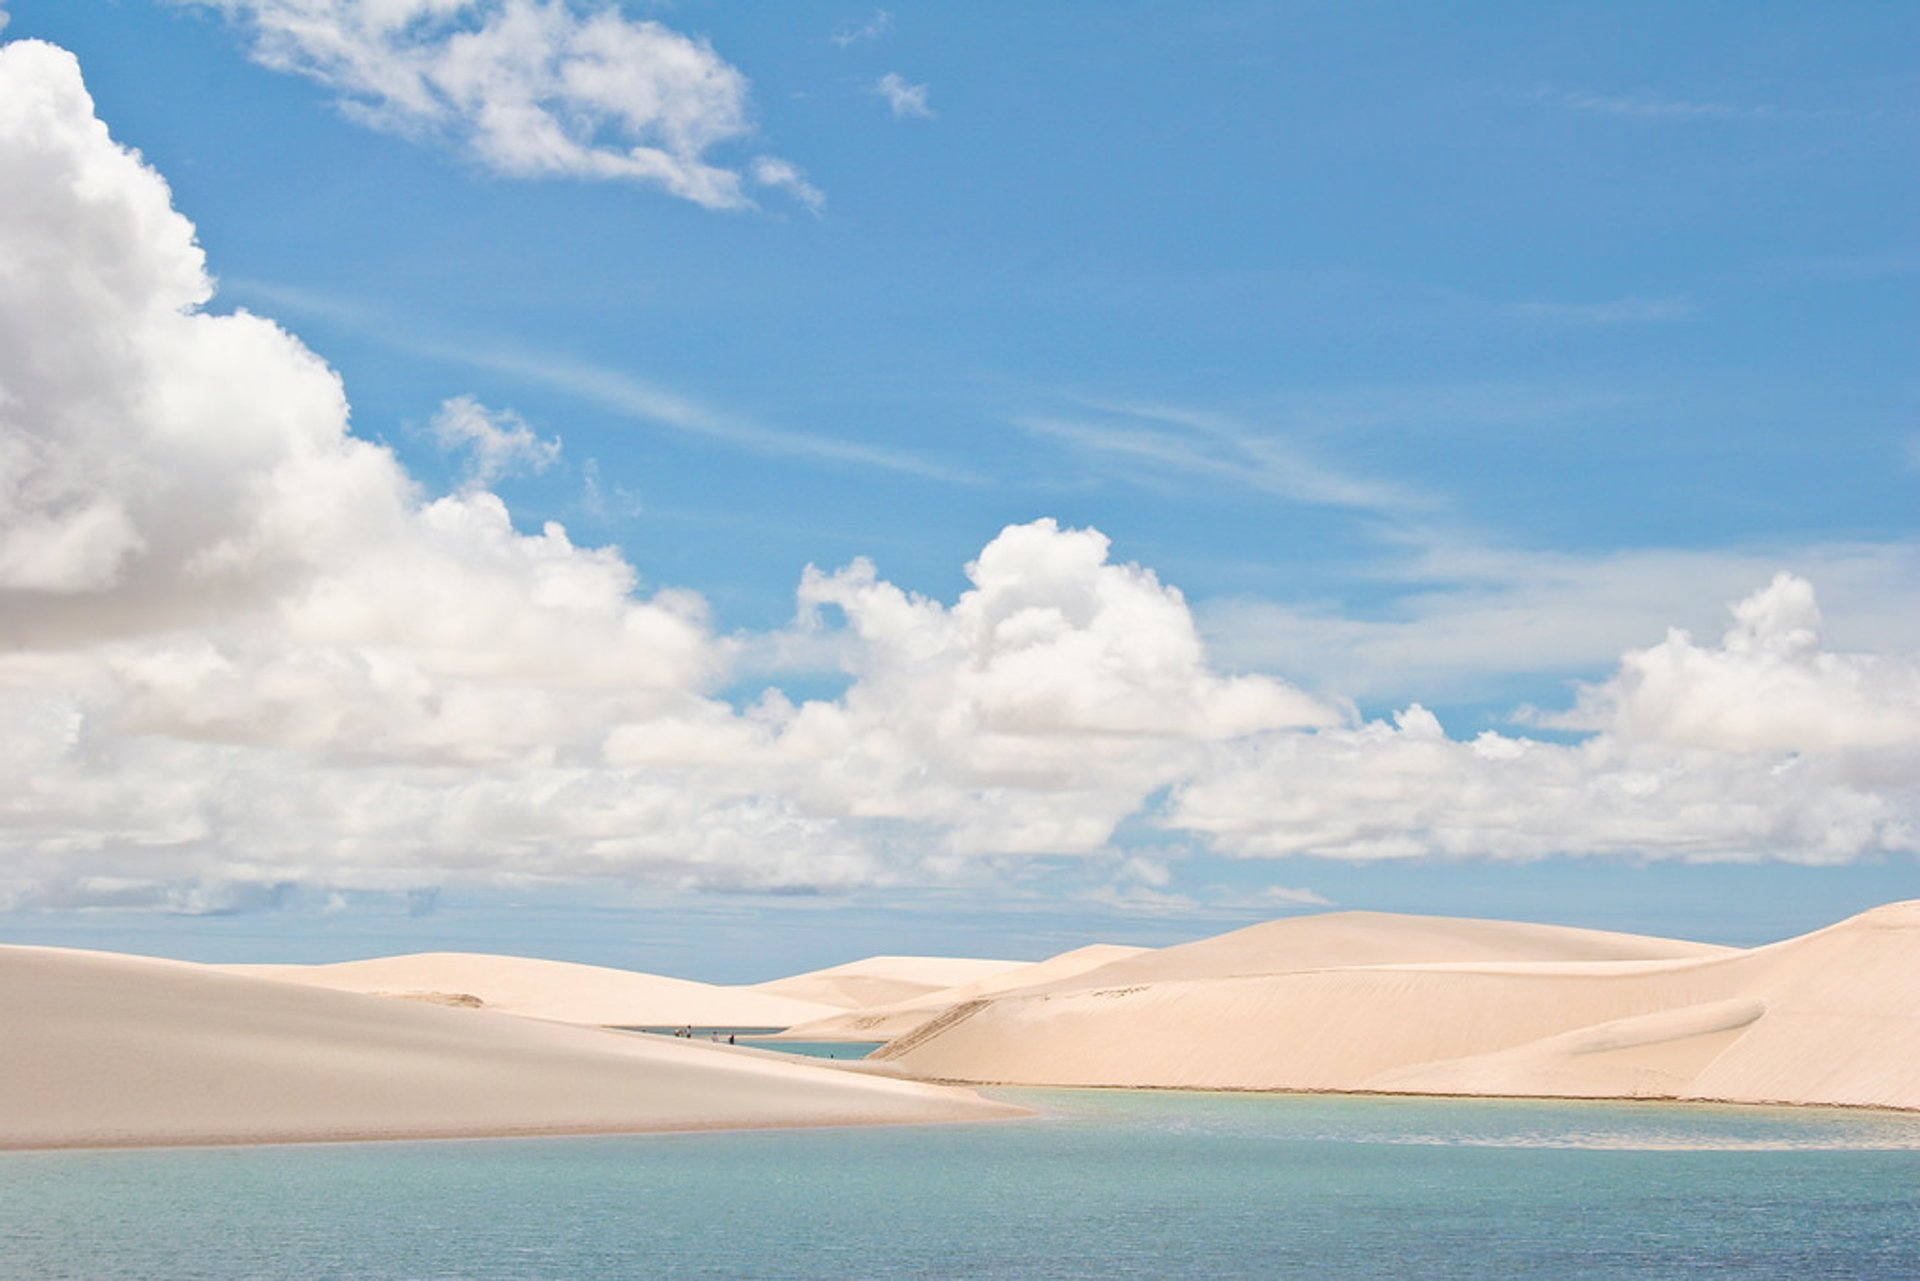 Lençóis Maranhenses National Park in Brazil 2020 - Best Time